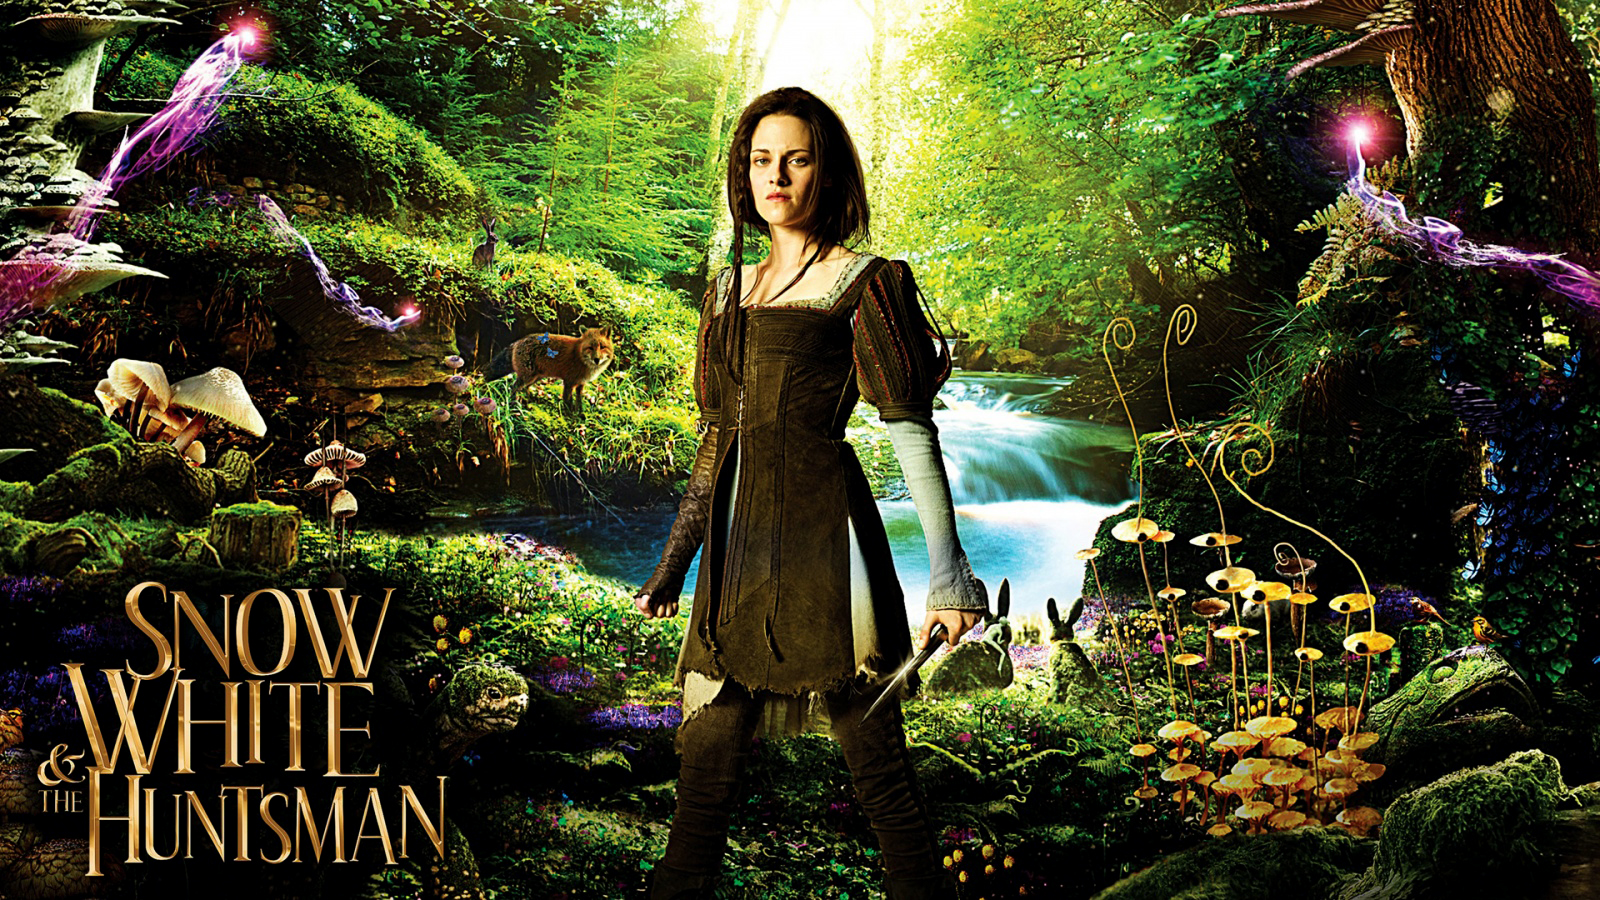 http://1.bp.blogspot.com/-6nhf49actyY/T8zvHRPxv2I/AAAAAAAAB9A/7RuMAPx84JU/s1600/Snow_White_and_The_Huntsman_Kristen_Steward_2012_HD_Wallpaper-Vvallpaper.Net.jpg